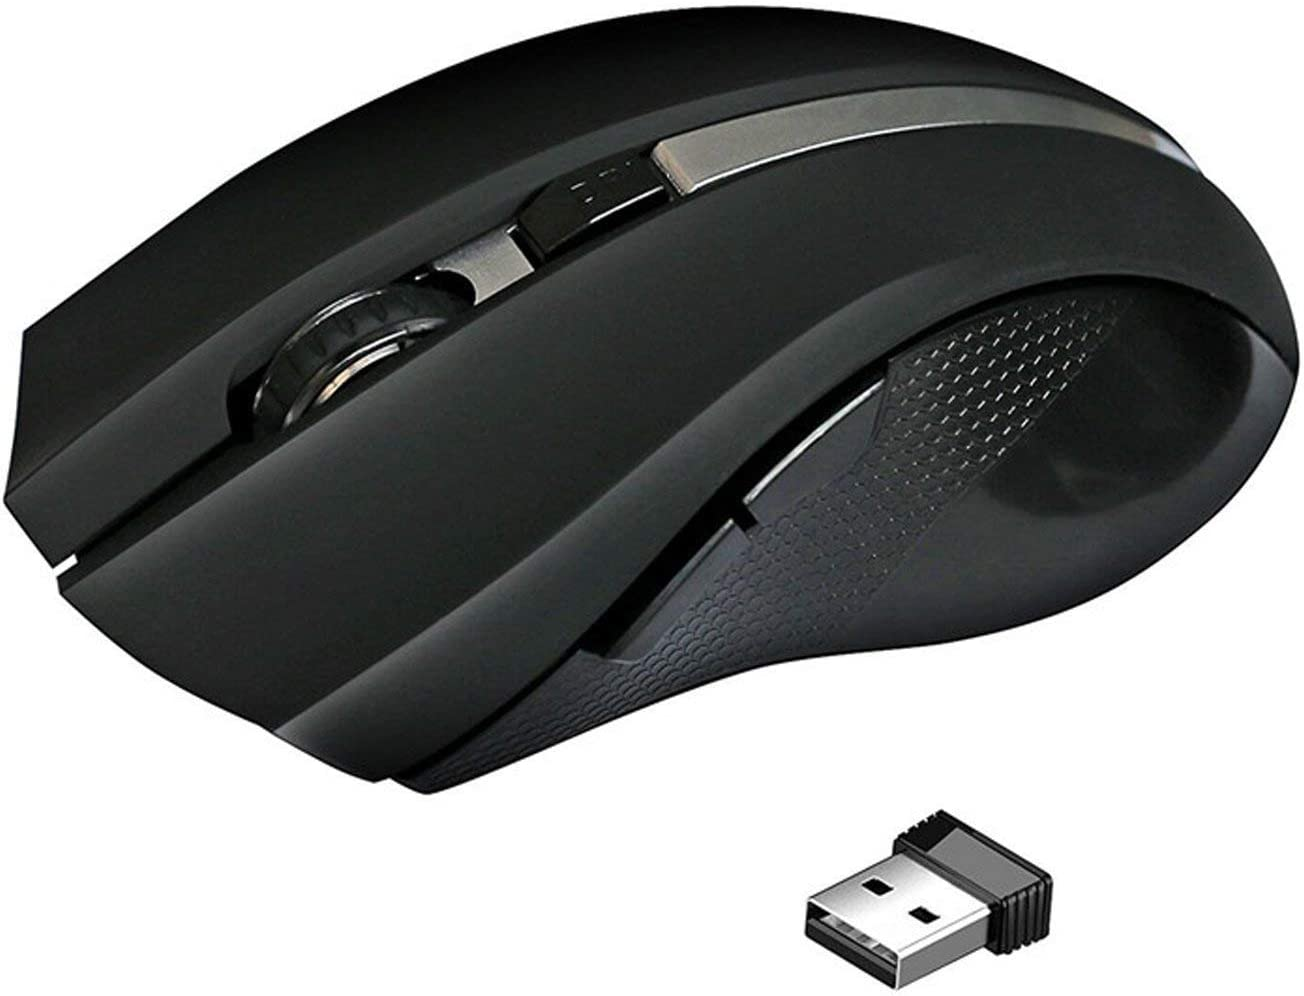 XBOSS L7 Bluetooth Wireless Optical Gaming 6 Button Mouse for Computer PC Mice with USB Adapter Mause for OS Windows Mac Linux Ps2 Ps3 pS4 Game Mouse Wireless(Black)